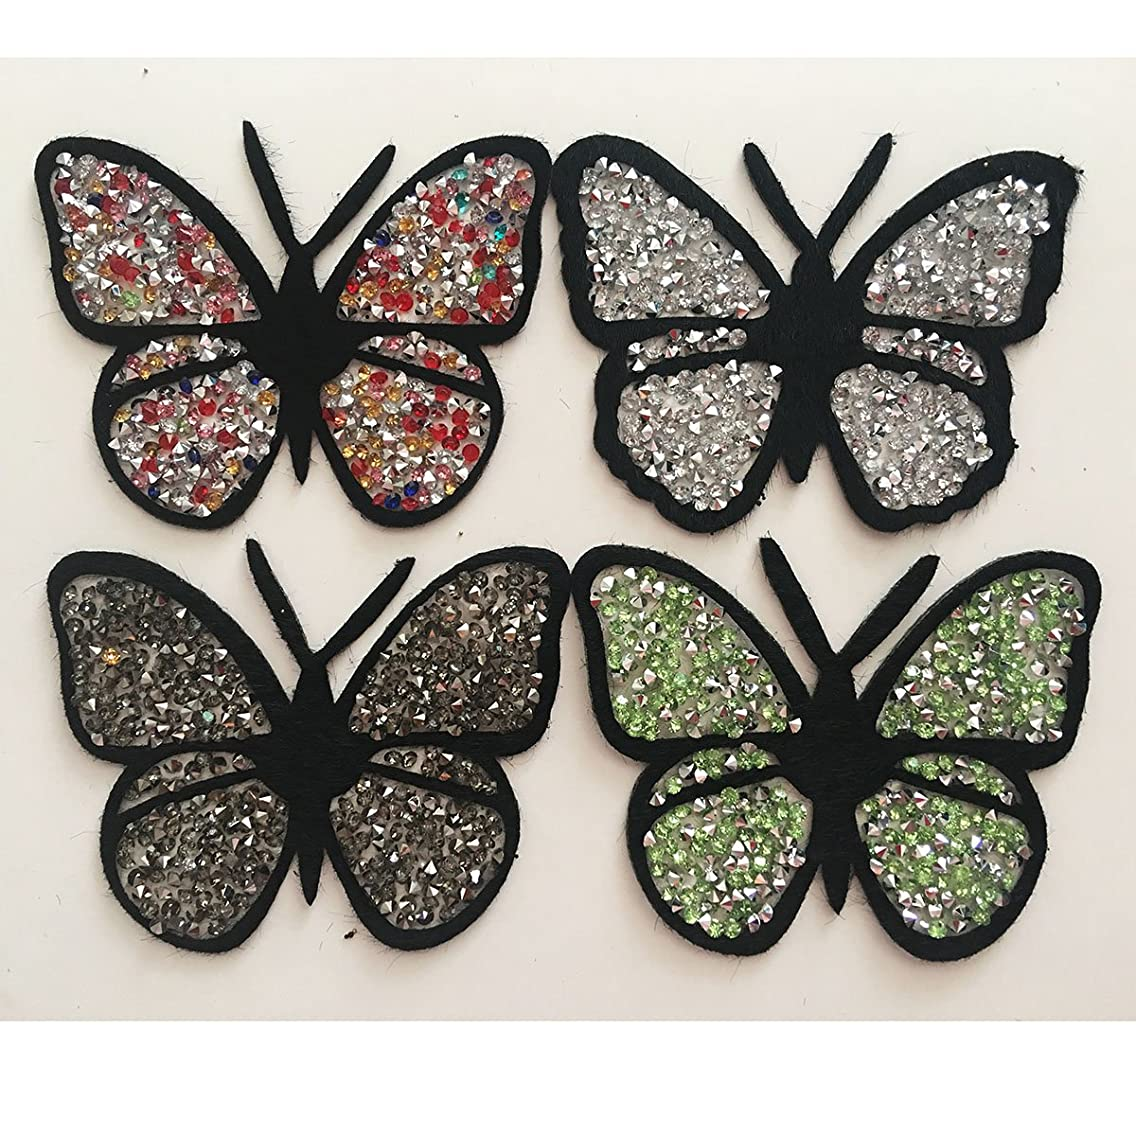 Yazon 4pcs Rhinestone Butterflies Appliques Patches Sew on Decorative Patch Iron on